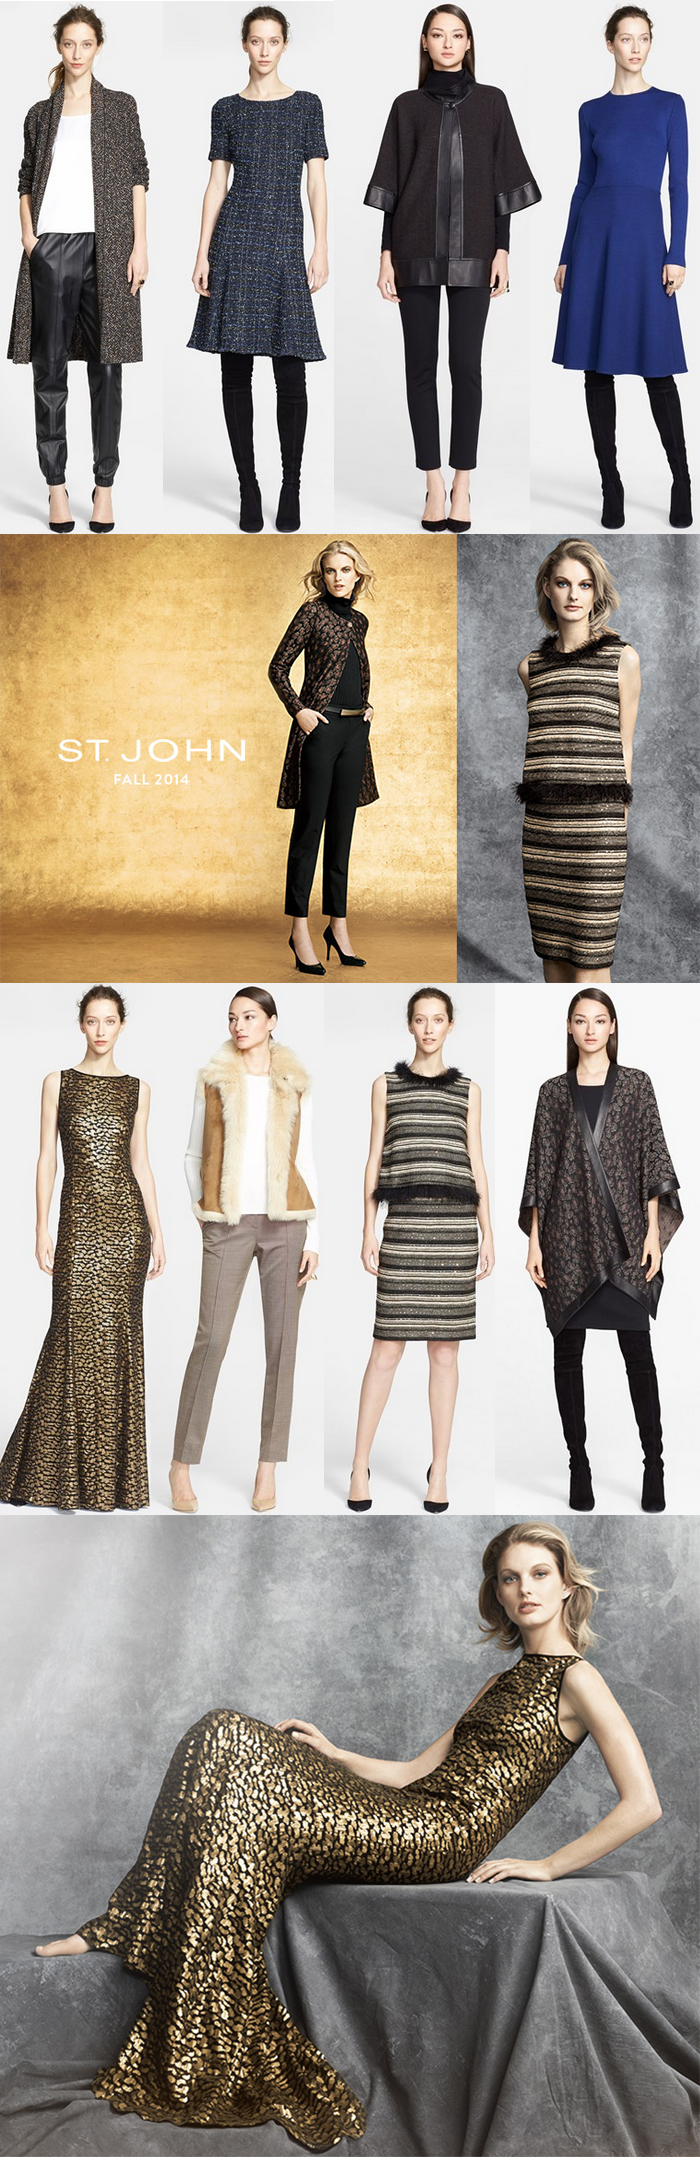 St. John Collection at Nordstrom | The Style Scribe